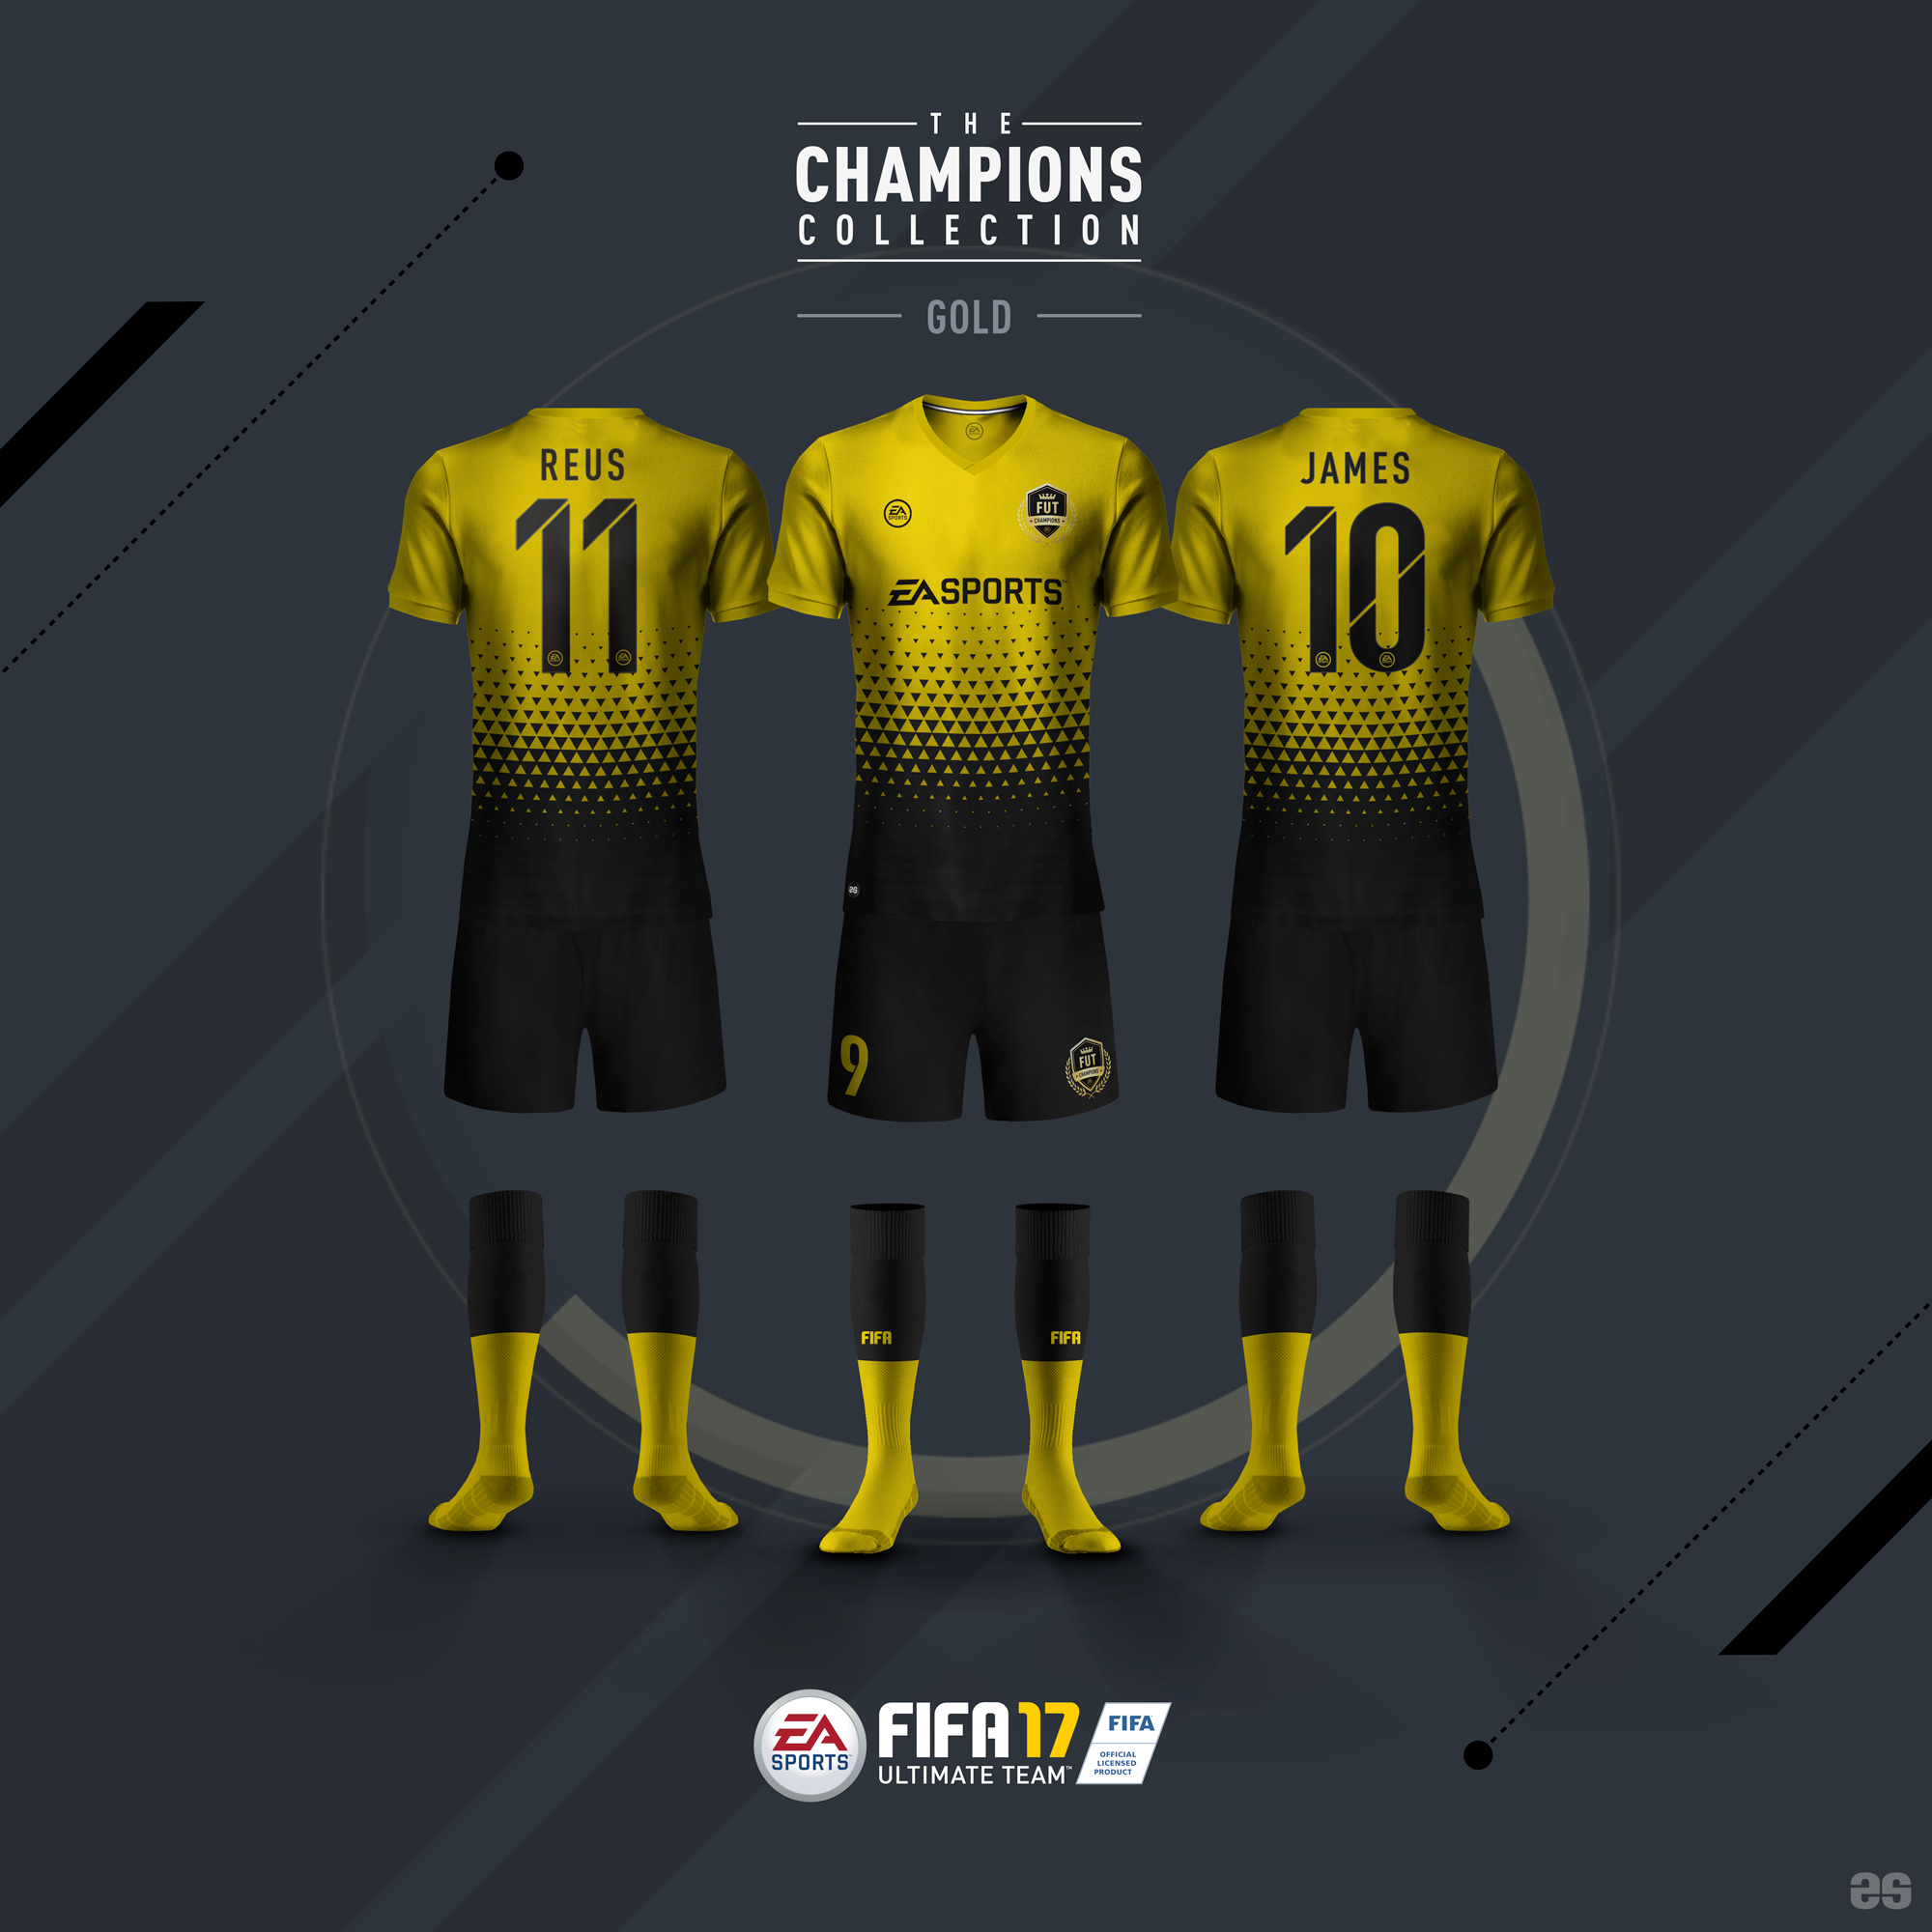 THE-CHAMPIONS-COLLECTION-C